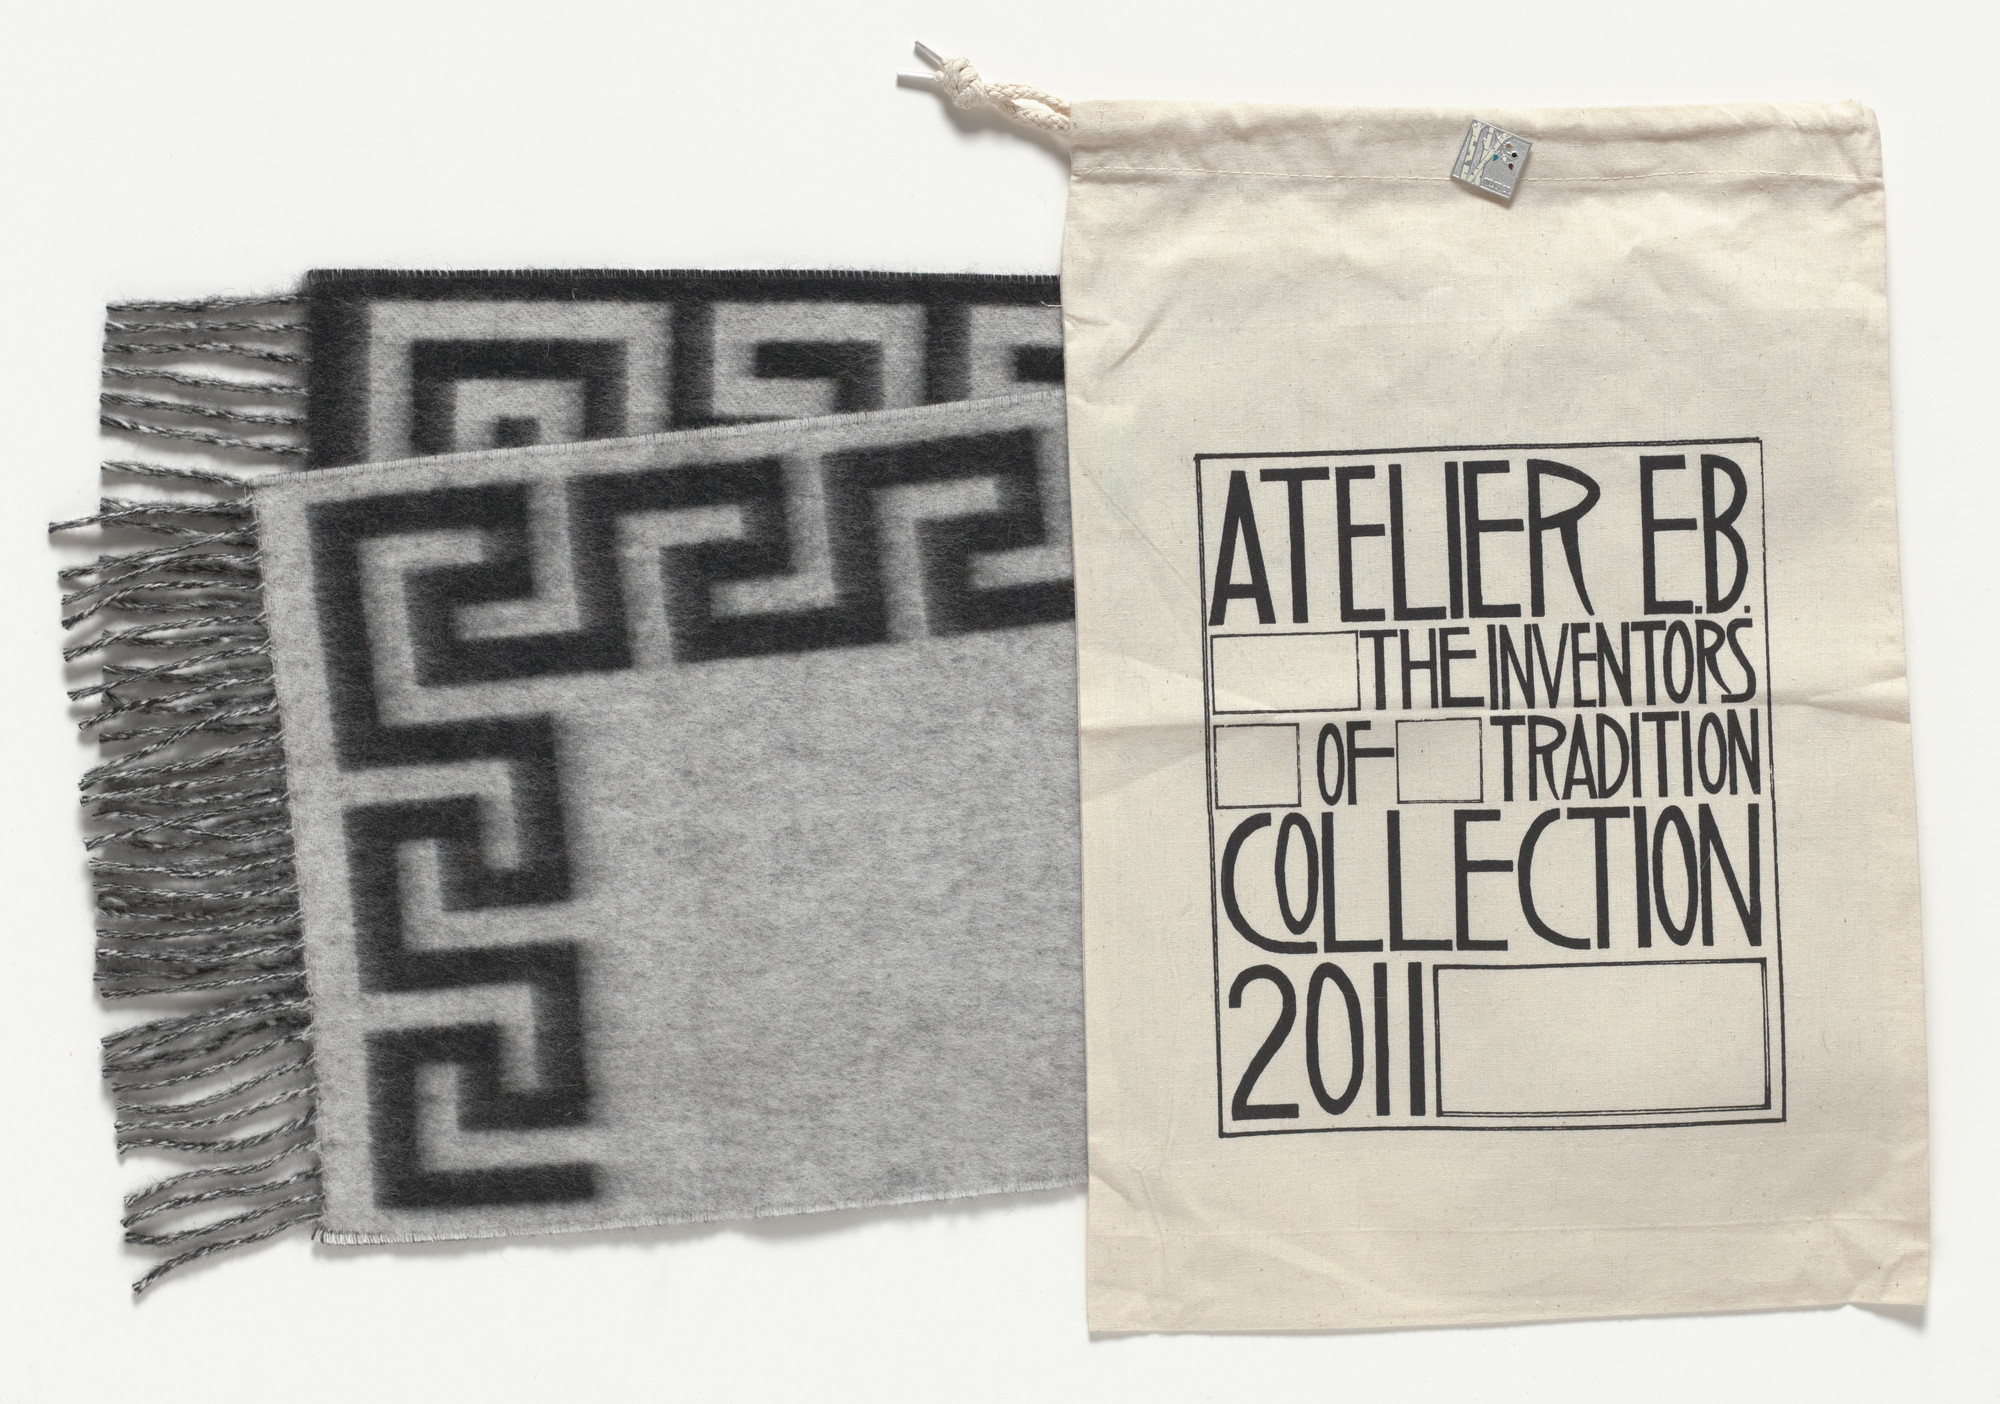 Atelier E.B, Panel, Lucy McKenzie, Beca Lipscombe, Catriona Duffy, Lucy McEachan. The Inventors of Tradition Limited Edition Collection. 2011